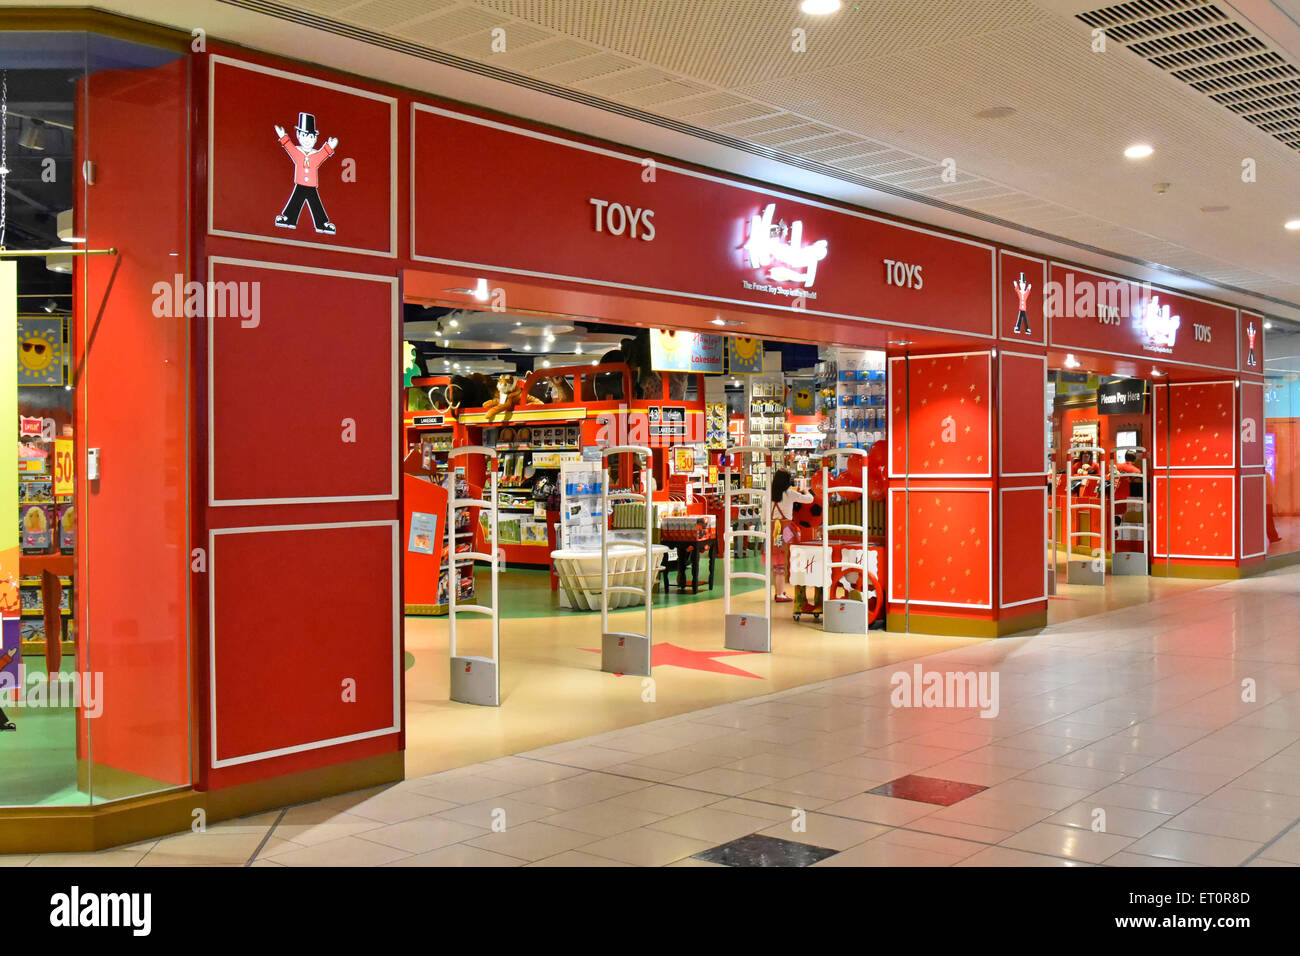 hamleys toy store in the intu lakeside indoor shopping mall at west stock photo 83611485 alamy. Black Bedroom Furniture Sets. Home Design Ideas